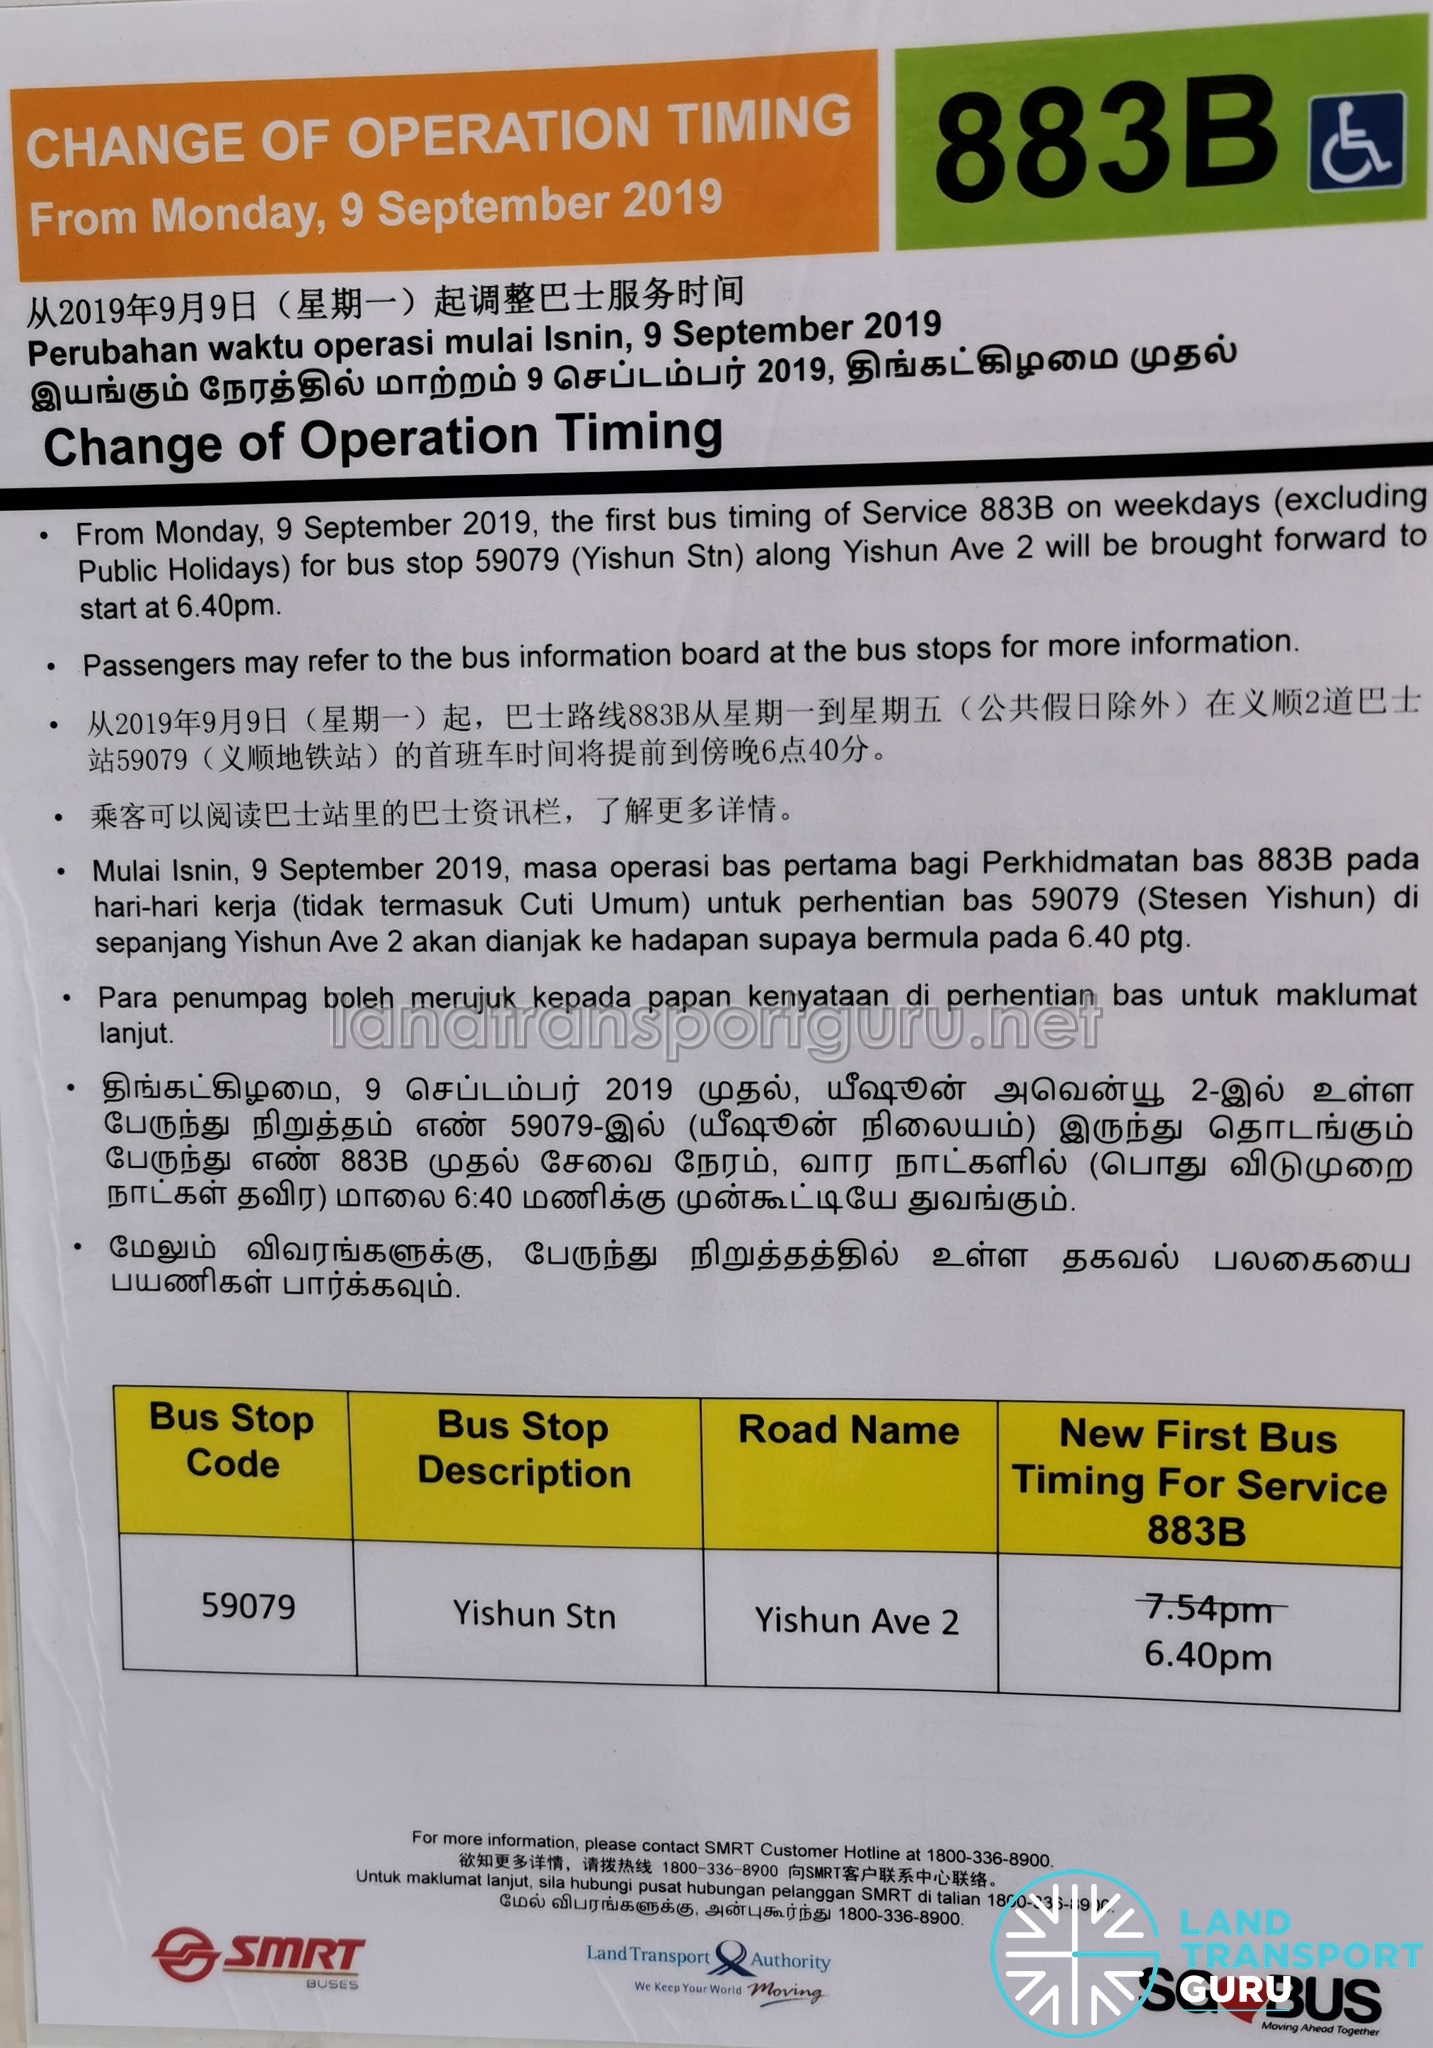 Change of Operating Hours for Service 883B Poster